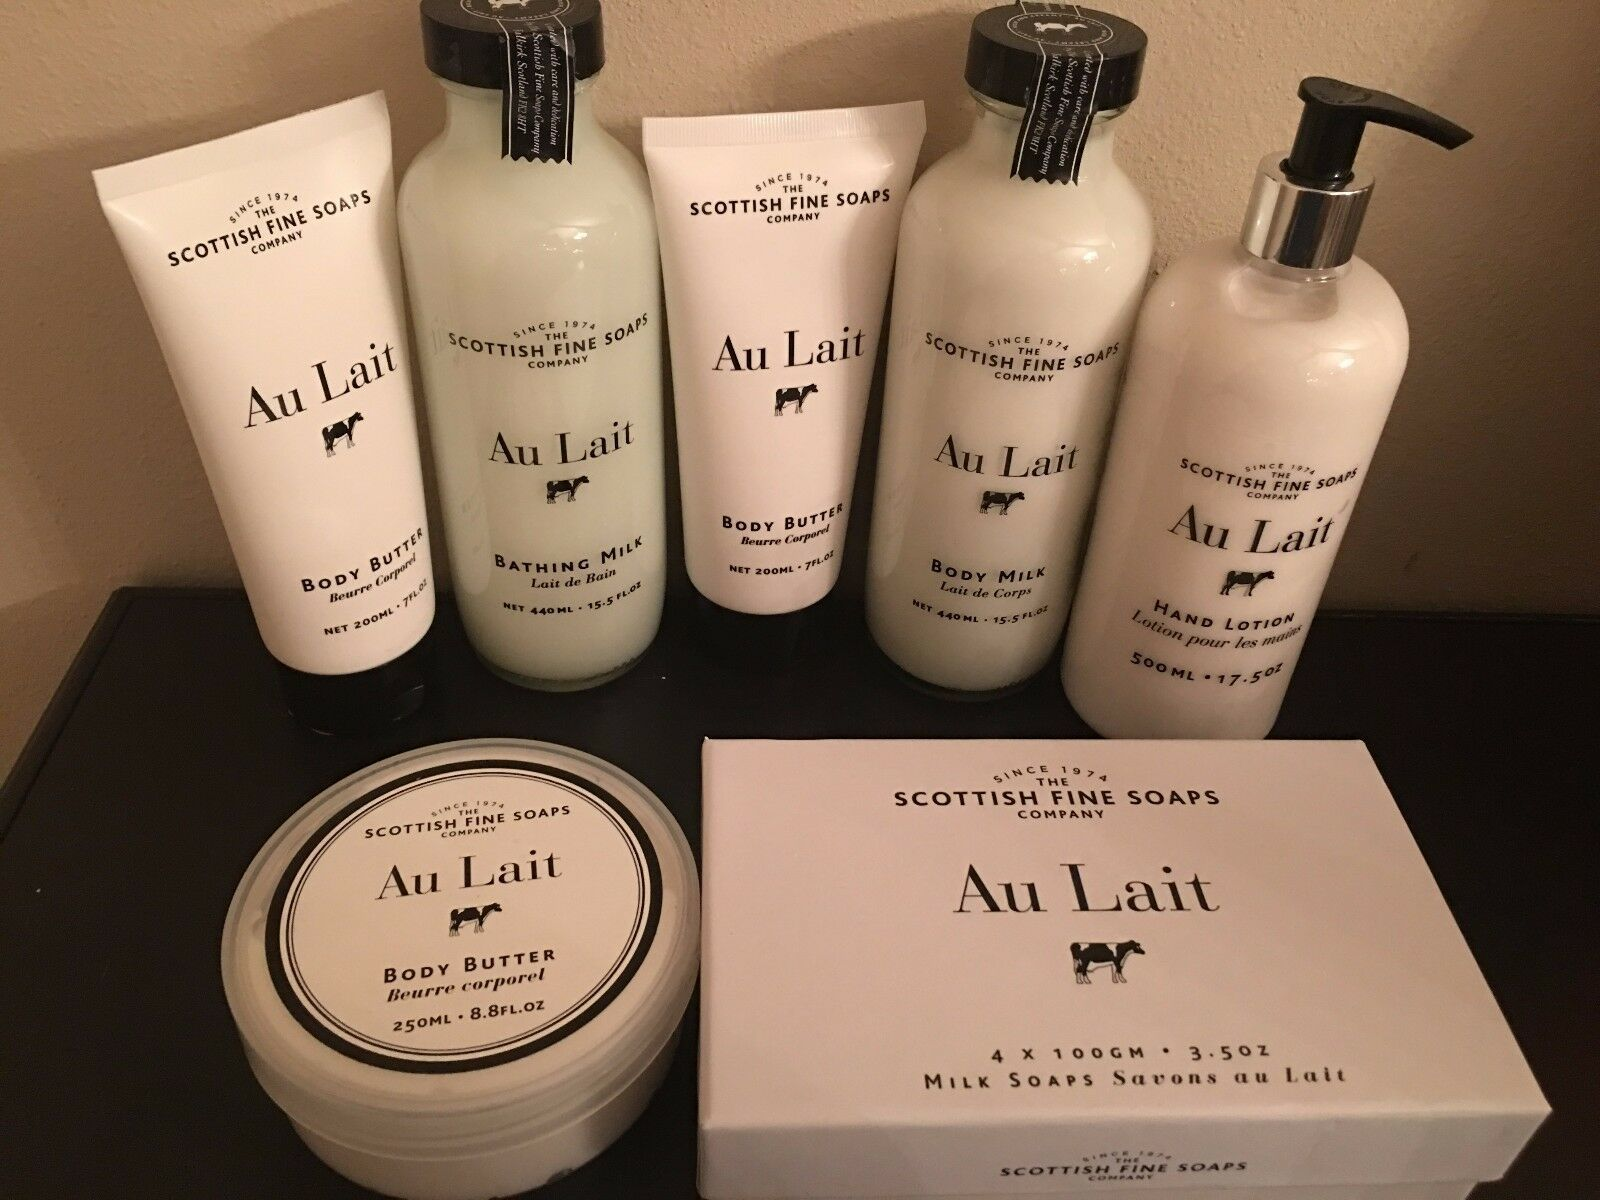 Scottish Fine Soaps Au Lait body lotion/butter/Bathing Milk/hand lotion, new image 2